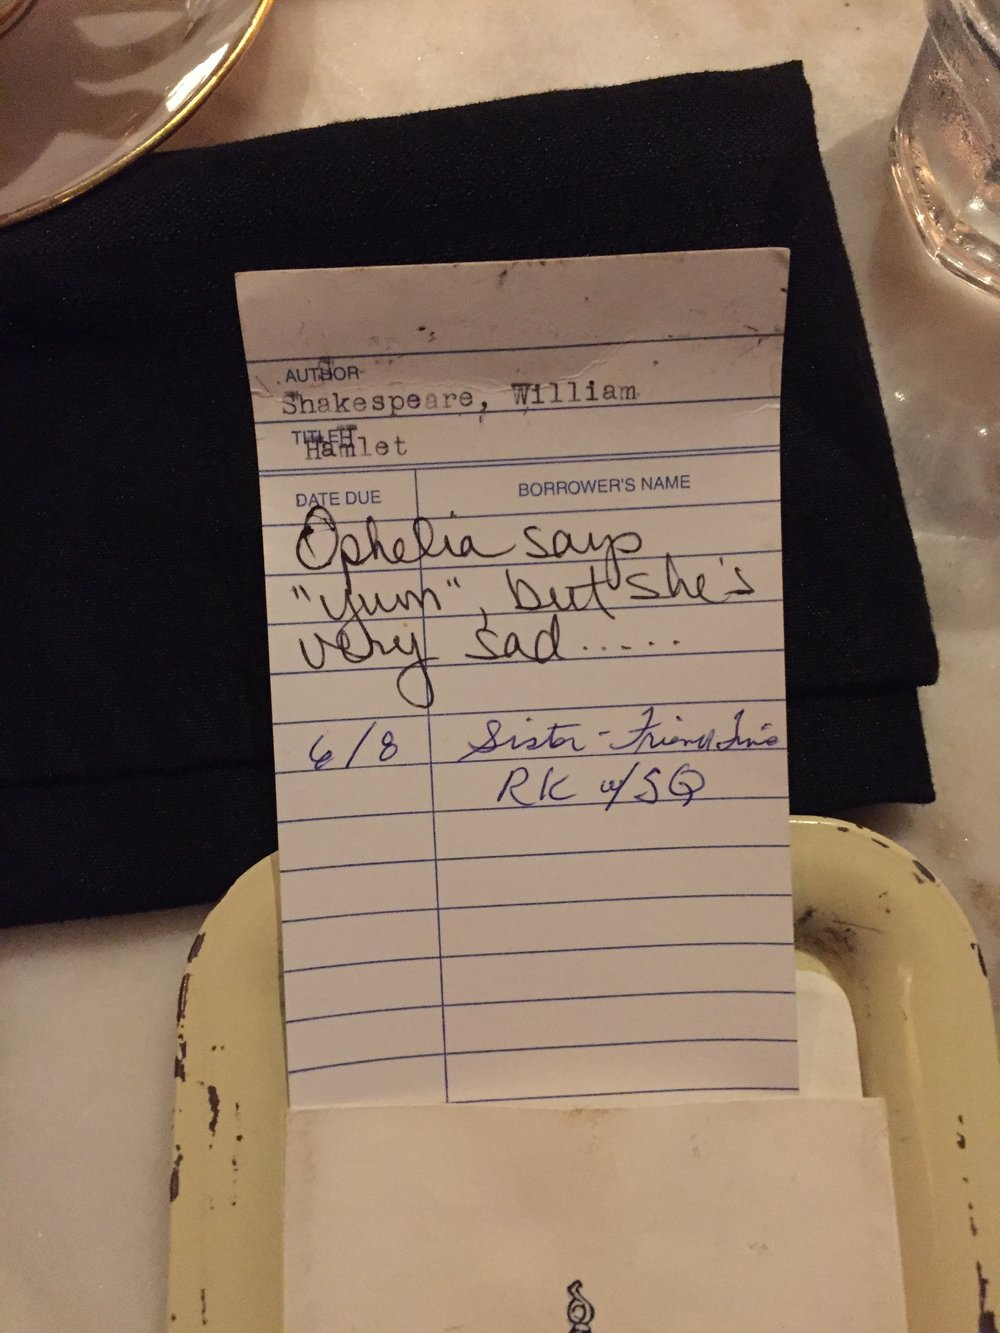 "[image description: a better look at the library checkout card. Someone has written ""Ophelia says 'yum' but she's very sad..."" and another person has signed and dated the card. (The date is recent, so it's definitely a restaurant patron and not an old library patron.)]"